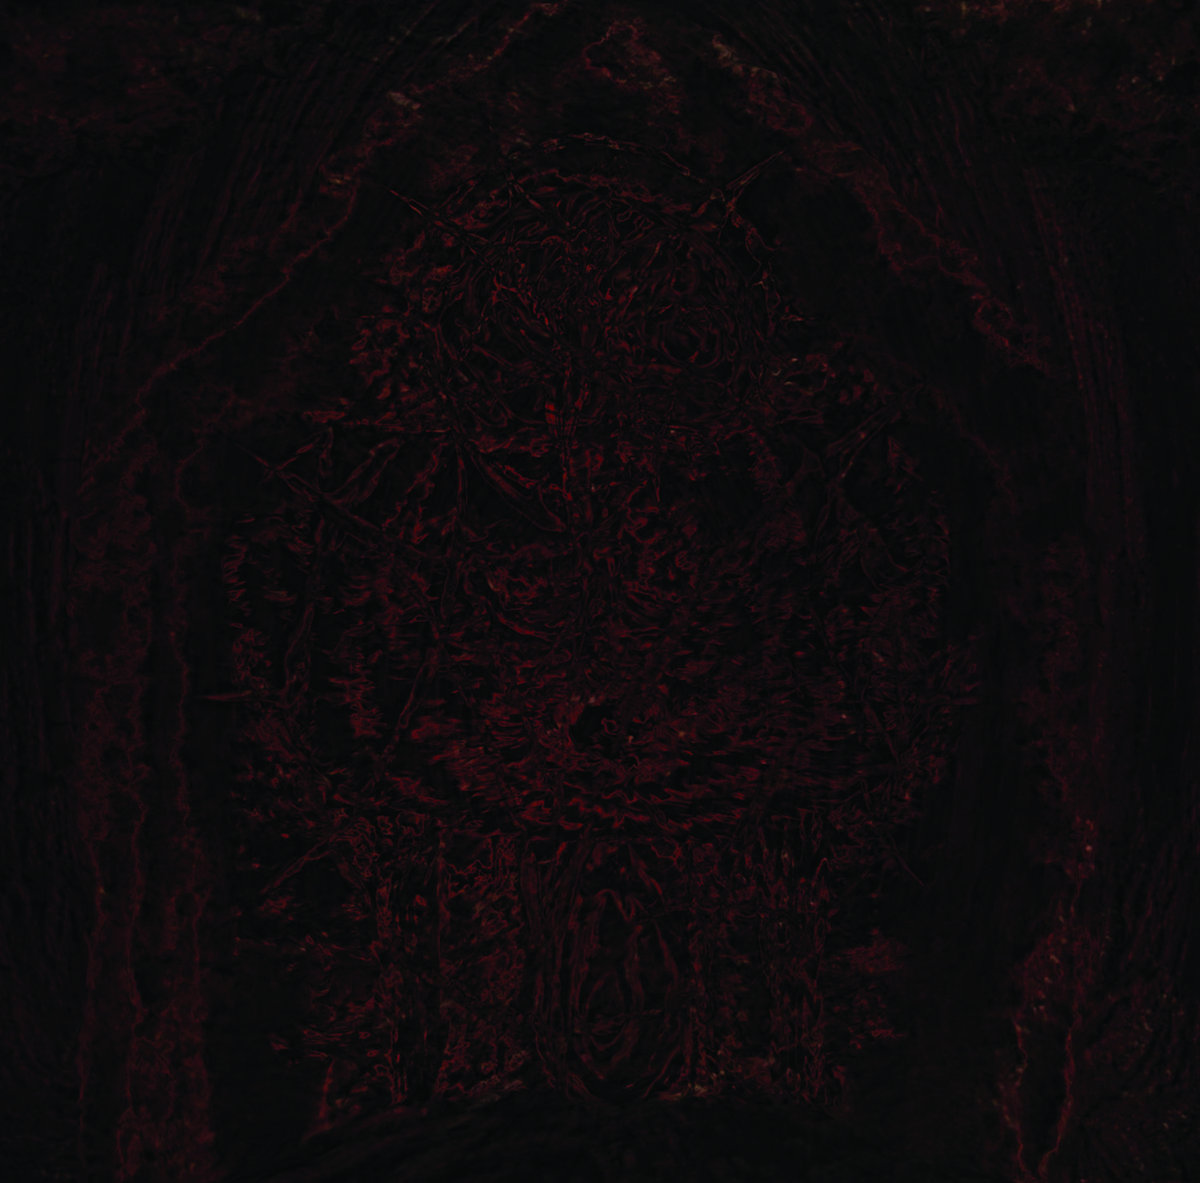 IMPETUOUS RITUAL Blight Upon Martyred Sentience – Vinyl LP (black)